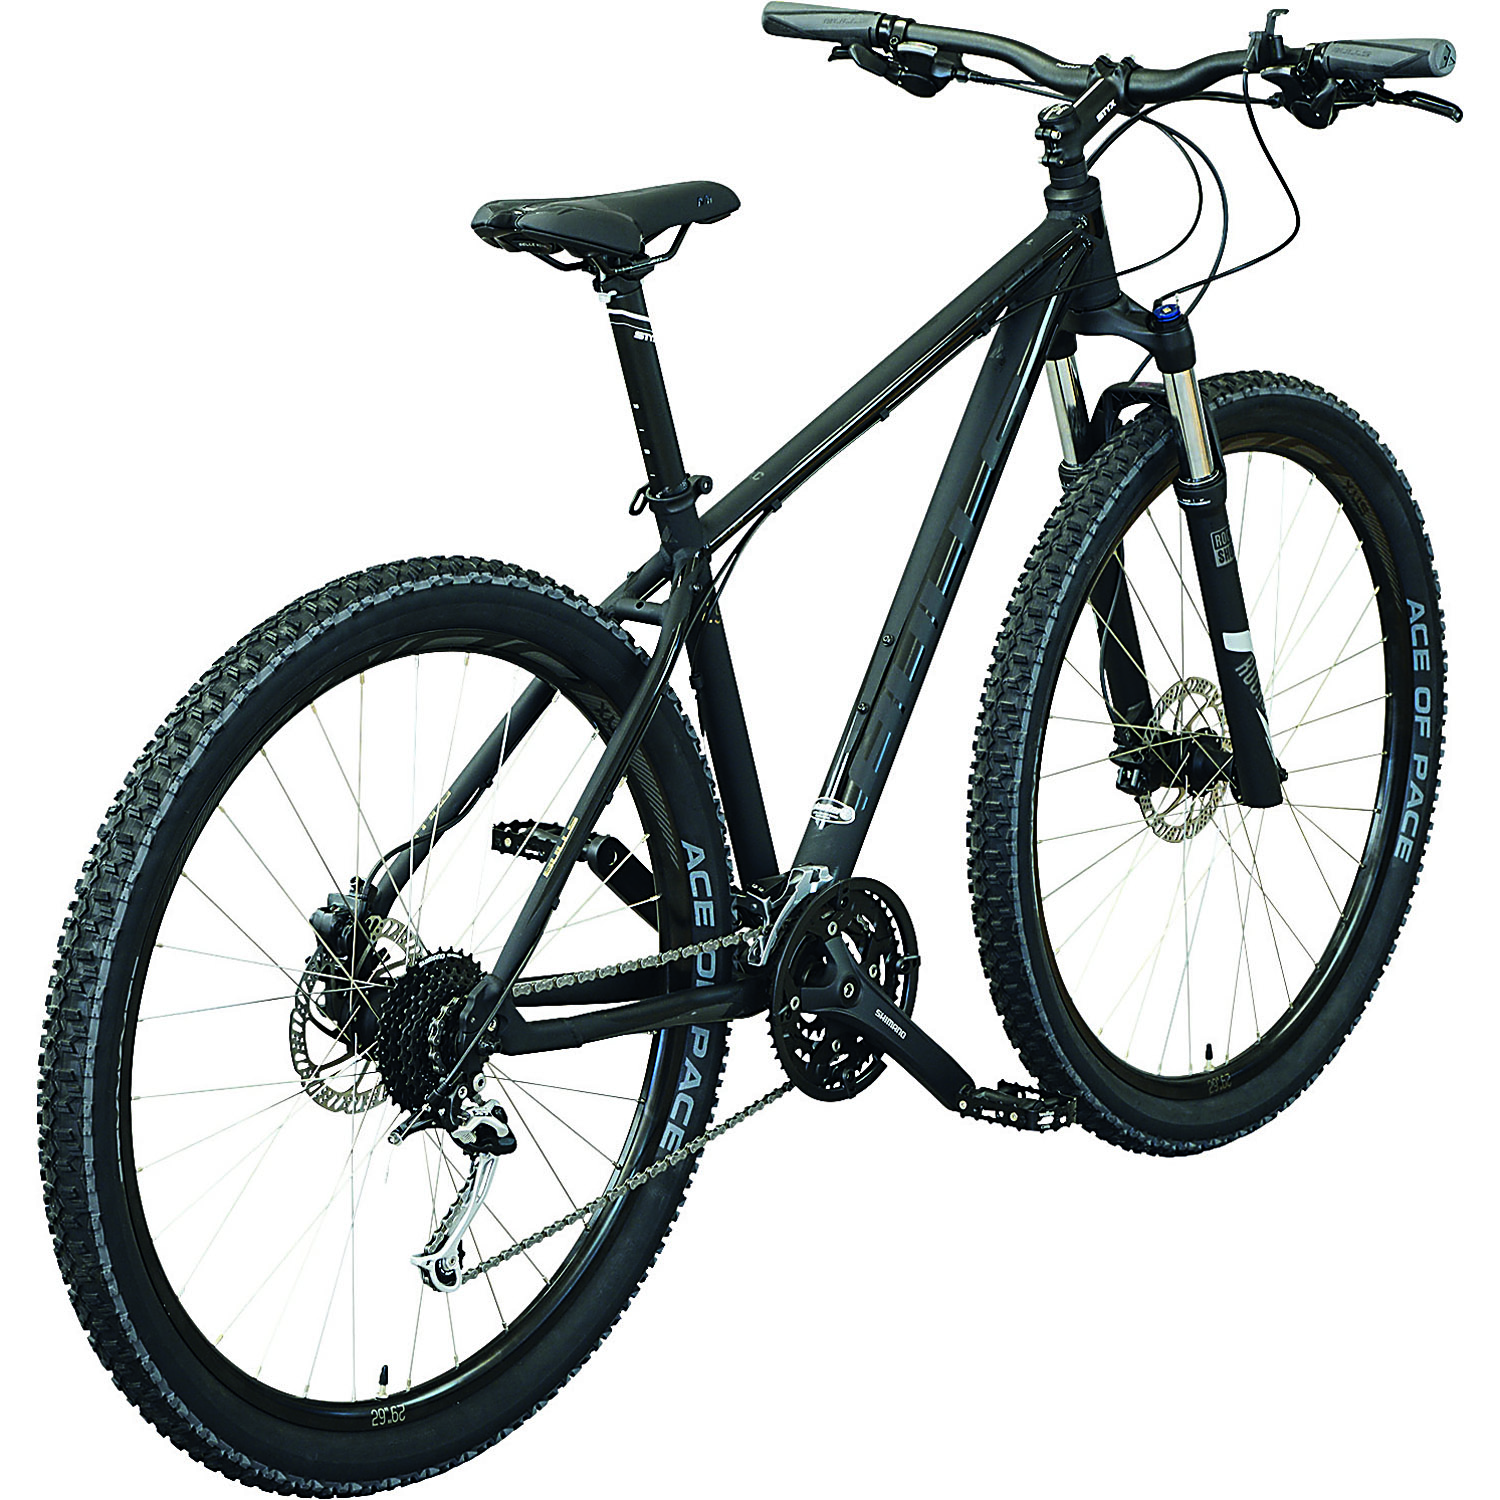 bulls lt 29 s mountainbike 29 zoll 41 cm online shop. Black Bedroom Furniture Sets. Home Design Ideas